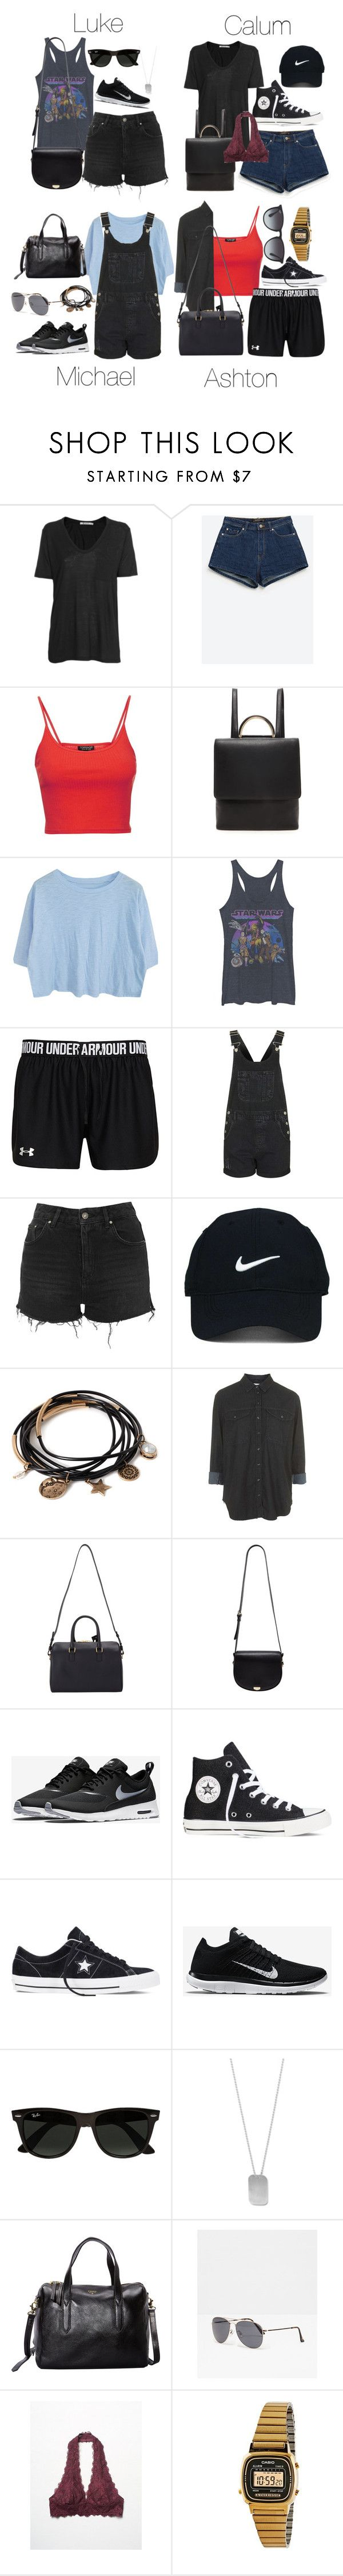 """""""Amusement Park Outfits (Spring/Summer)"""" by fivesecondsofinspiration ❤ liked on Polyvore featuring T By Alexander Wang, Zara, Topshop, Forever 21, Nike Golf, Yves Saint Laurent, NIKE, Converse, Ray-Ban and BillyTheTree"""